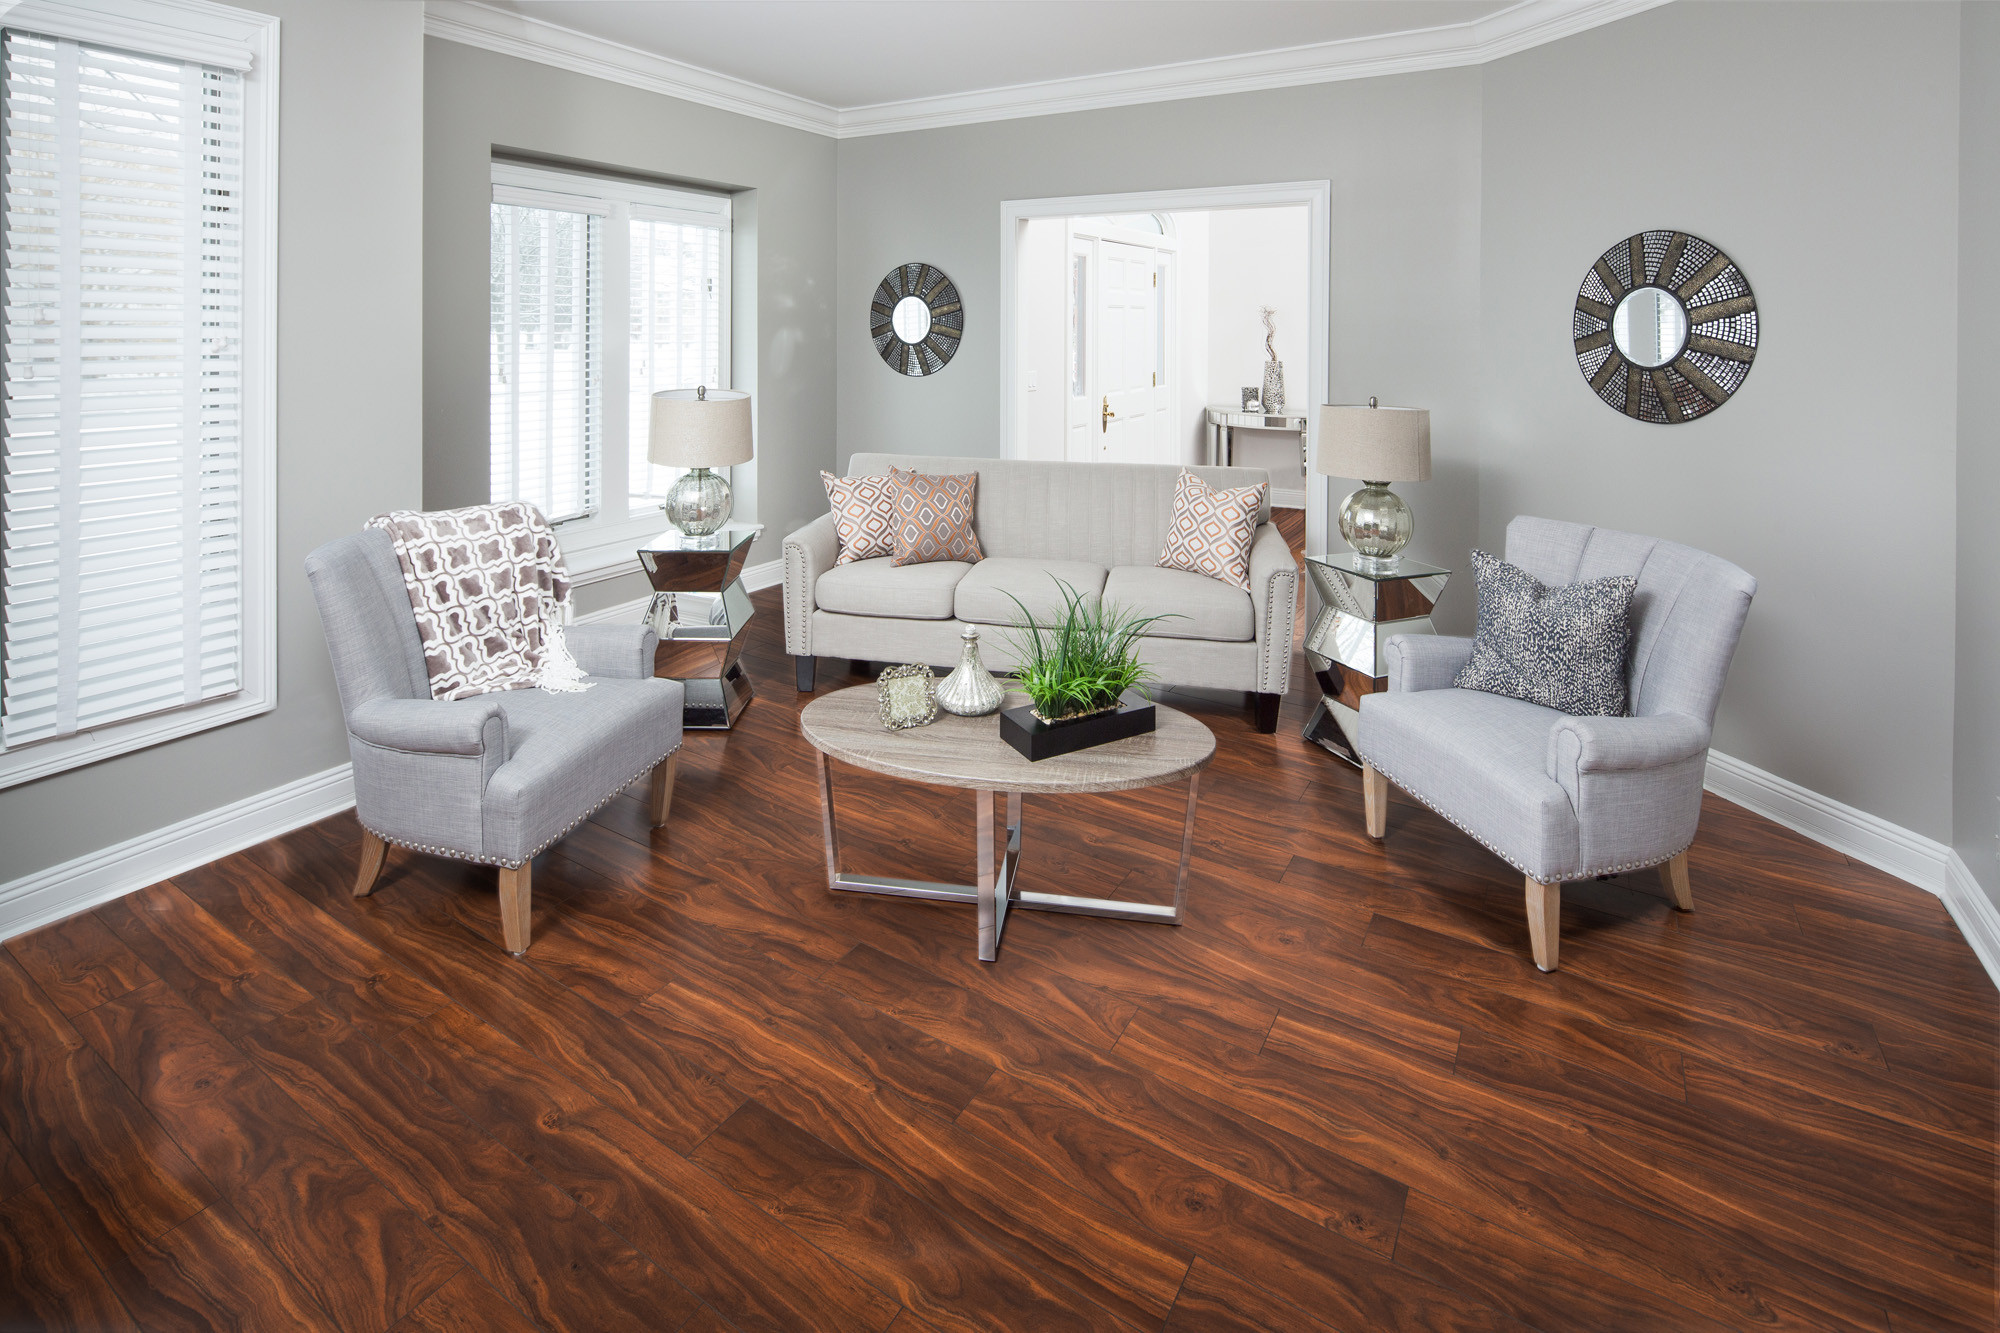 Best ideas about Living Room Flooring . Save or Pin New Laminate Flooring Collection Now.